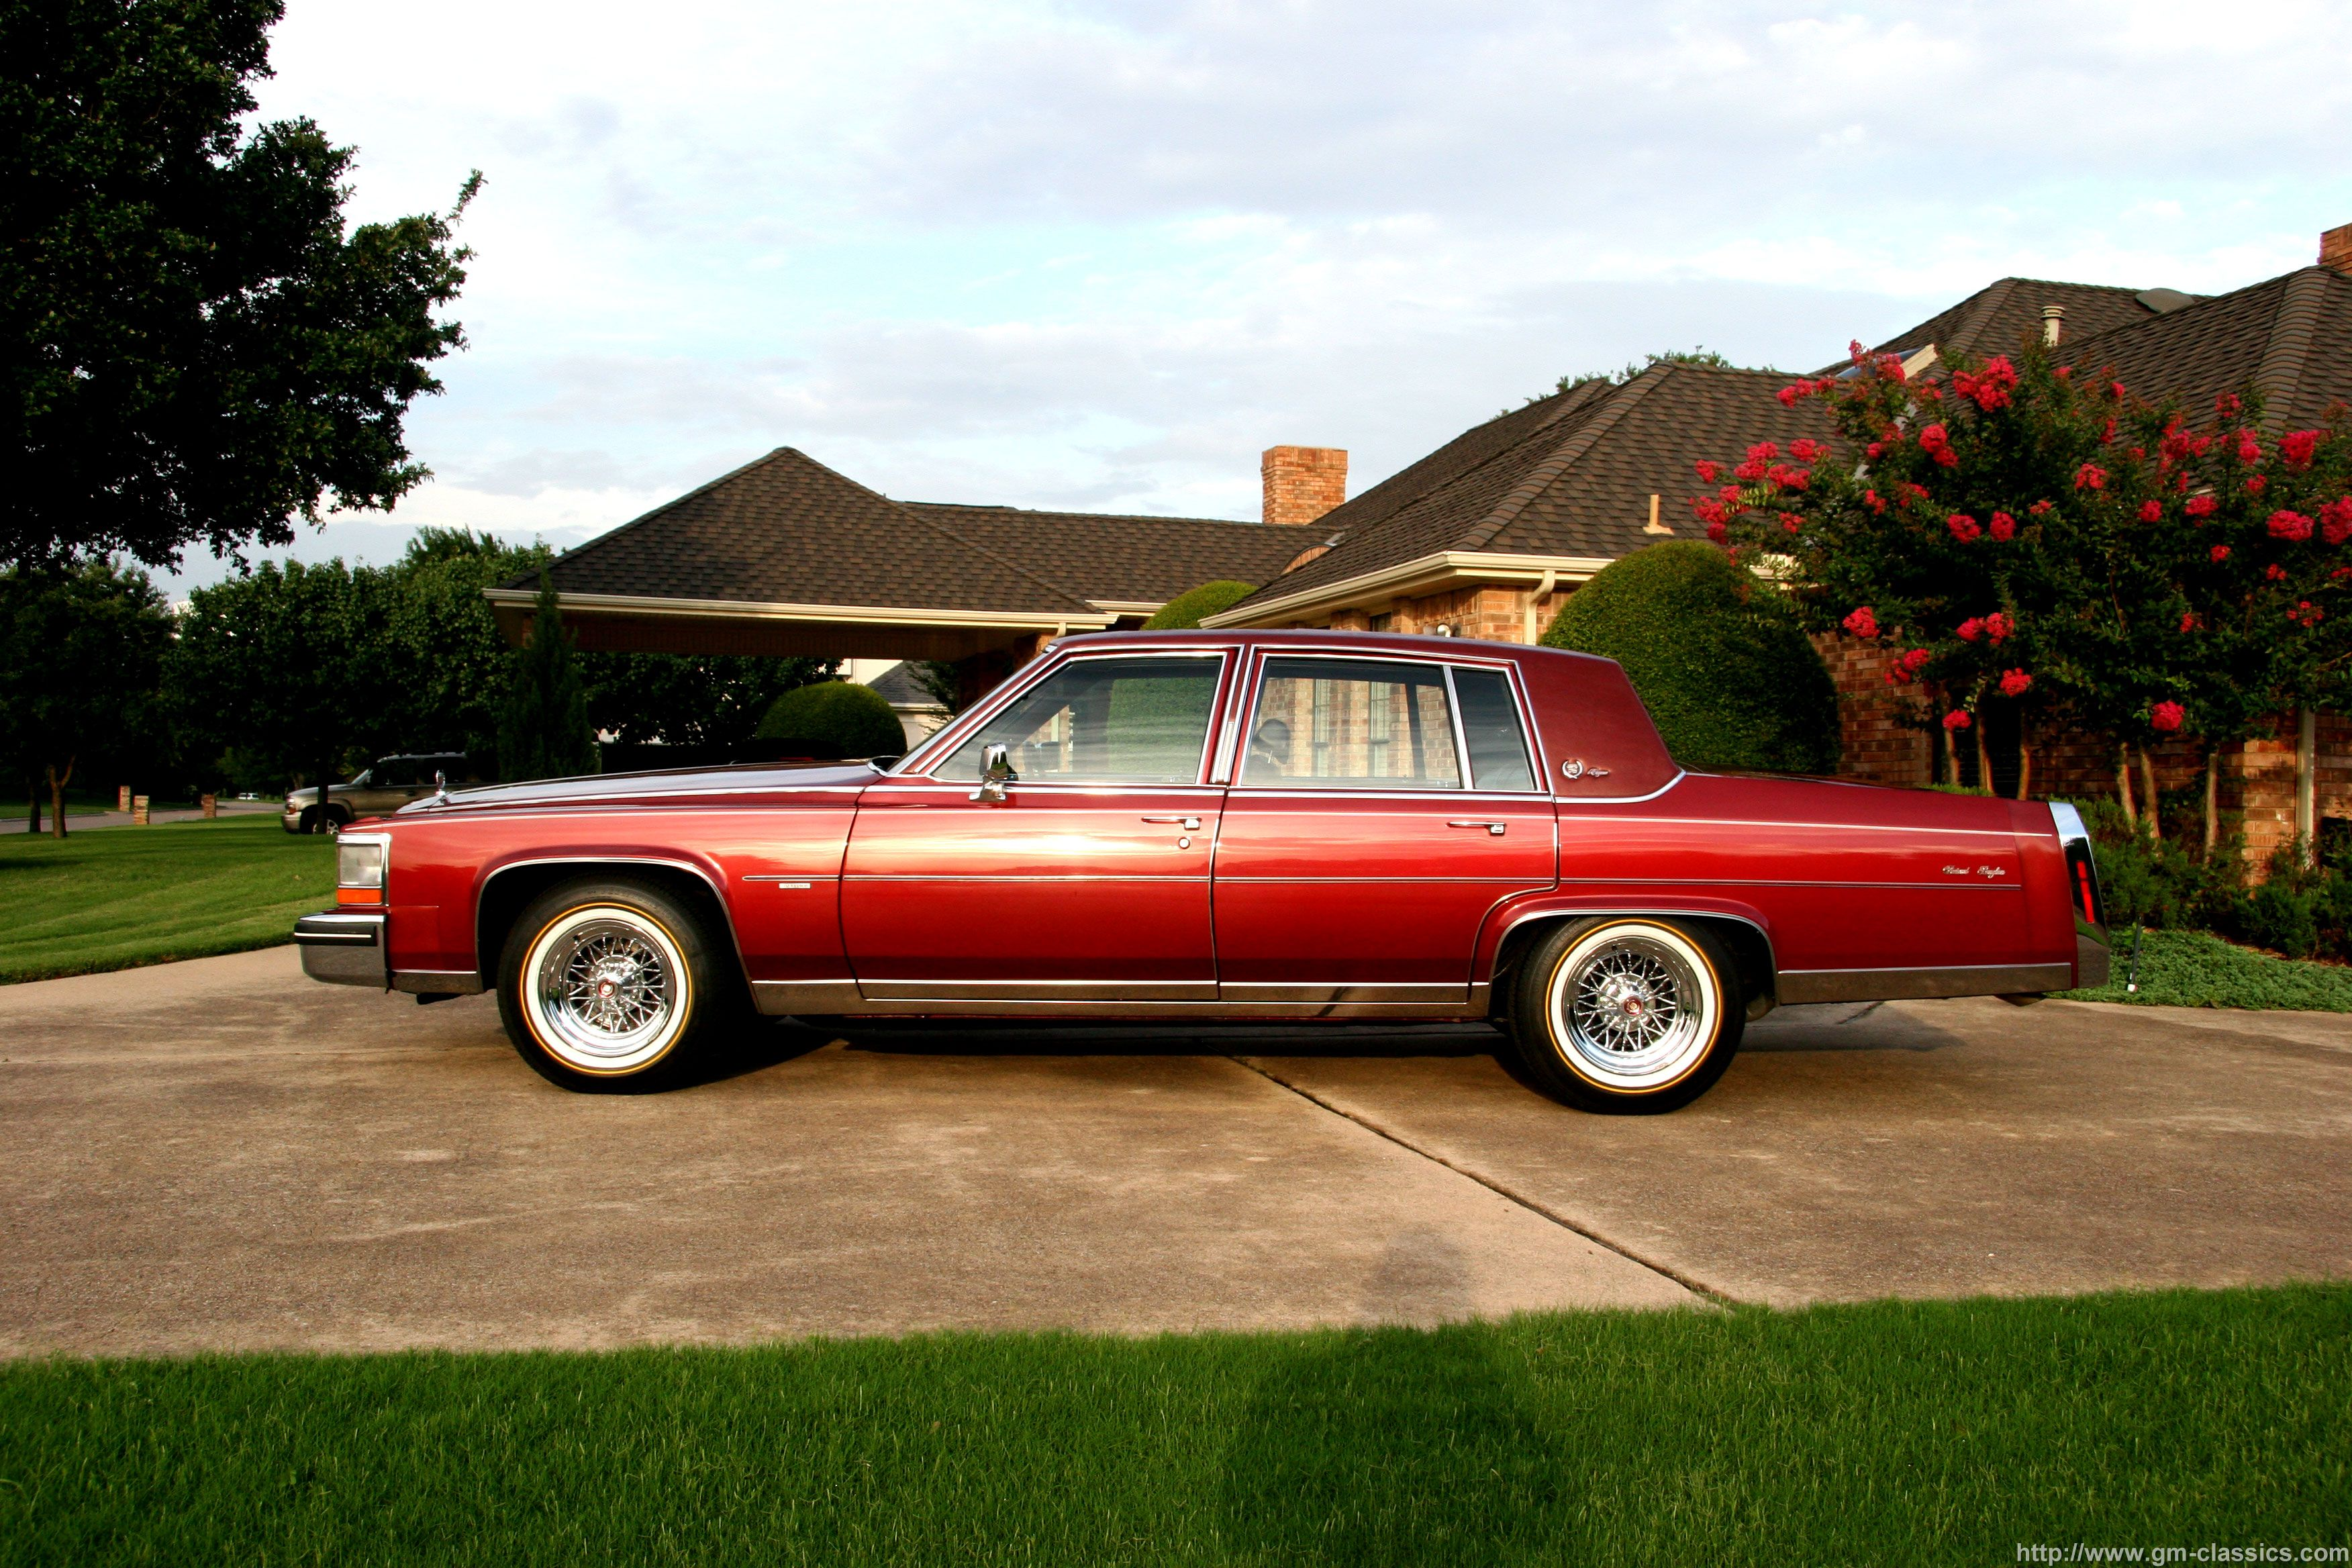 fleetwood is classic brougham big loaded this llc listing year and highly motors vehicle the for cosmopolitan cadillac exotic of dsc sale fully series last collectible